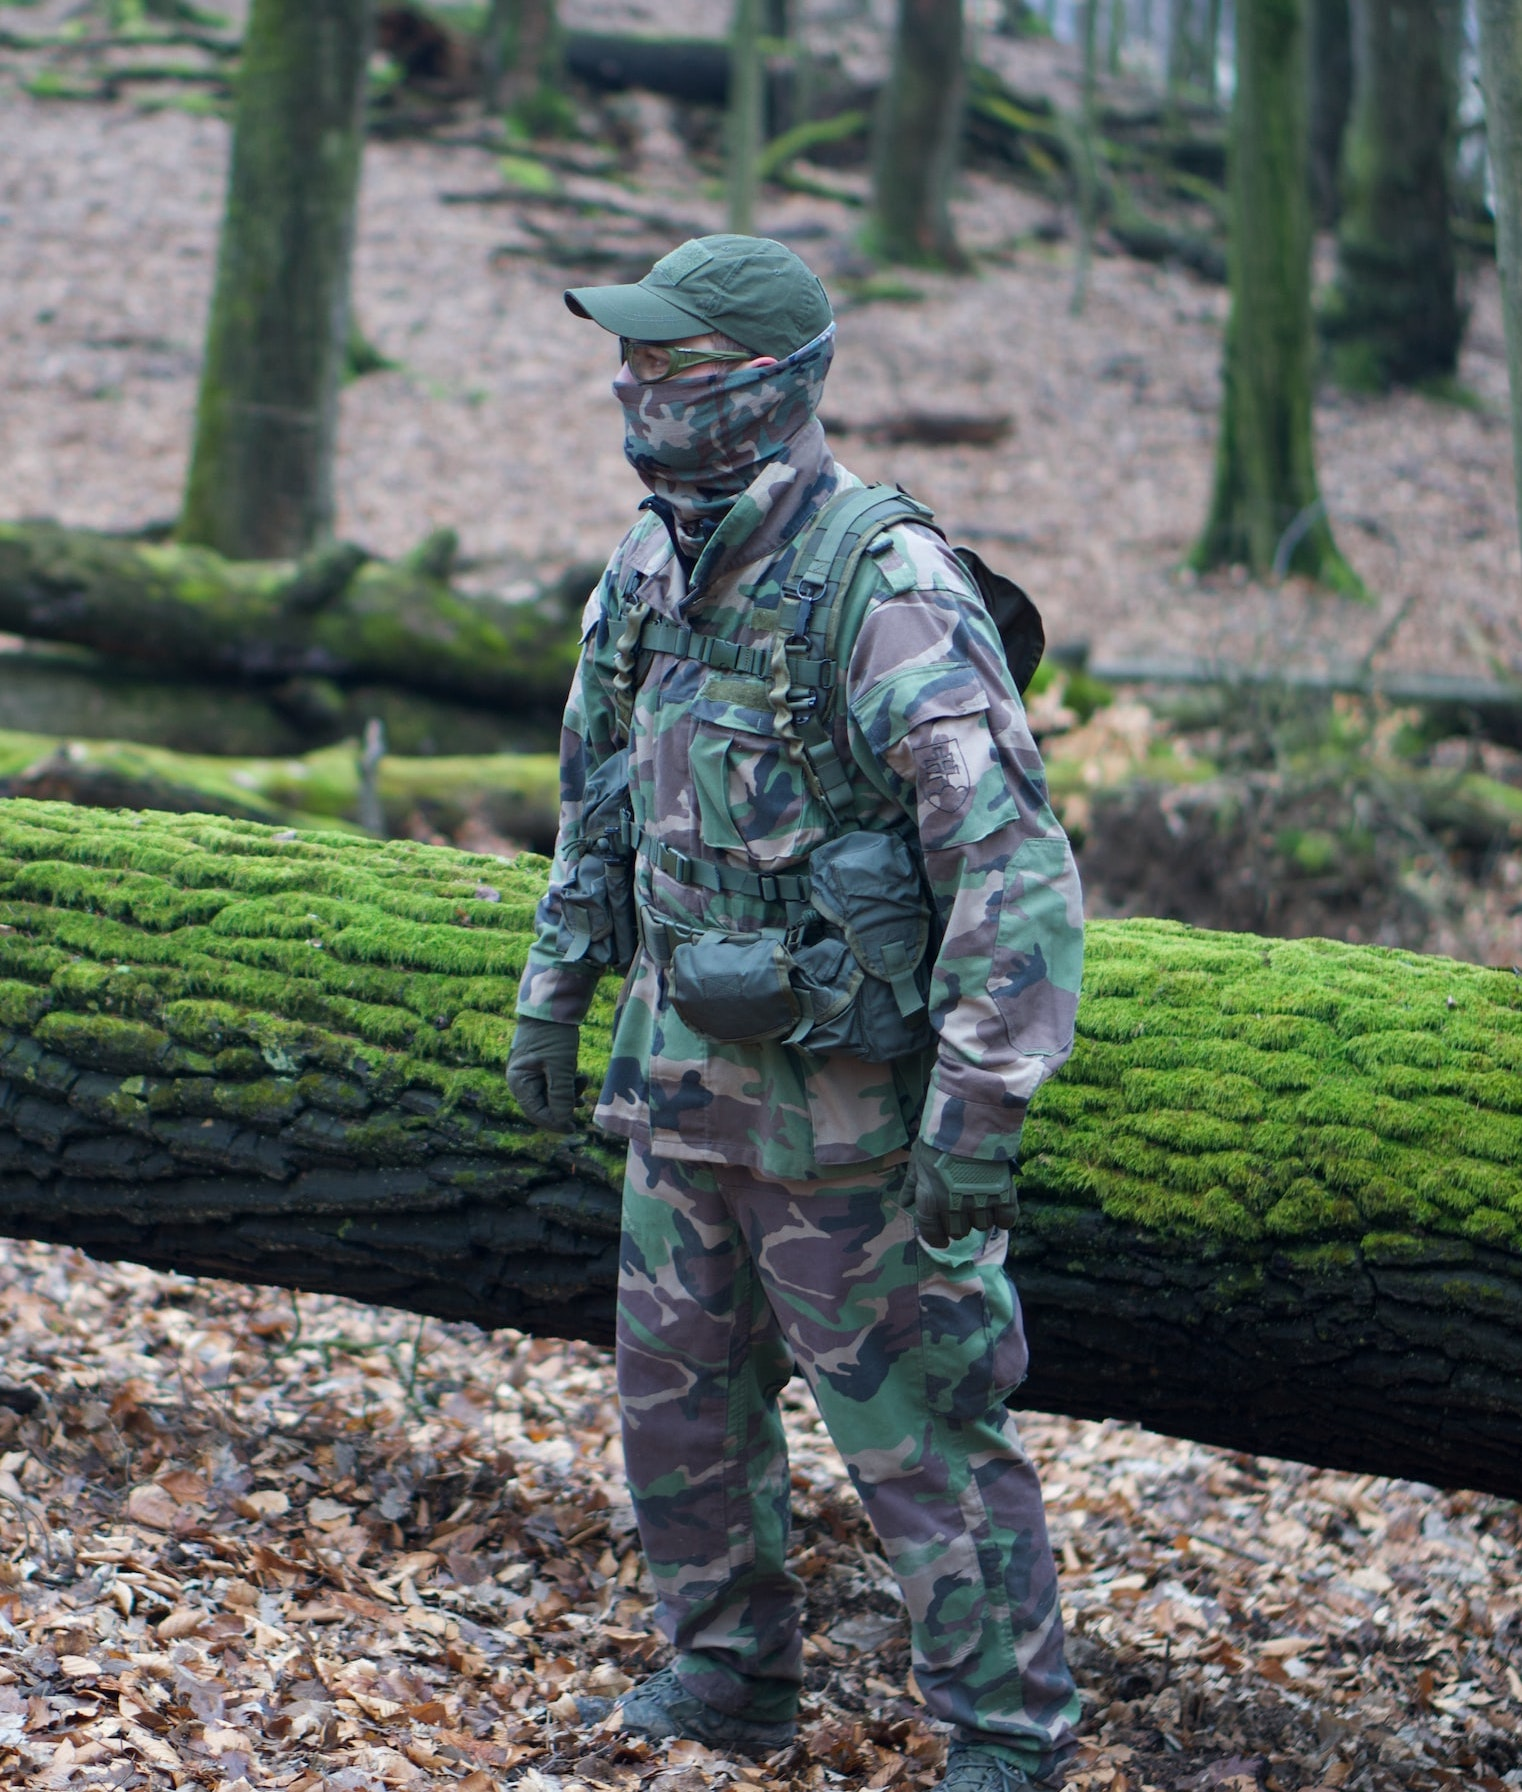 In a forest a hunter in camouflage gear is gazing to the left. Behind the hunter is a fallen log covered in green moss.